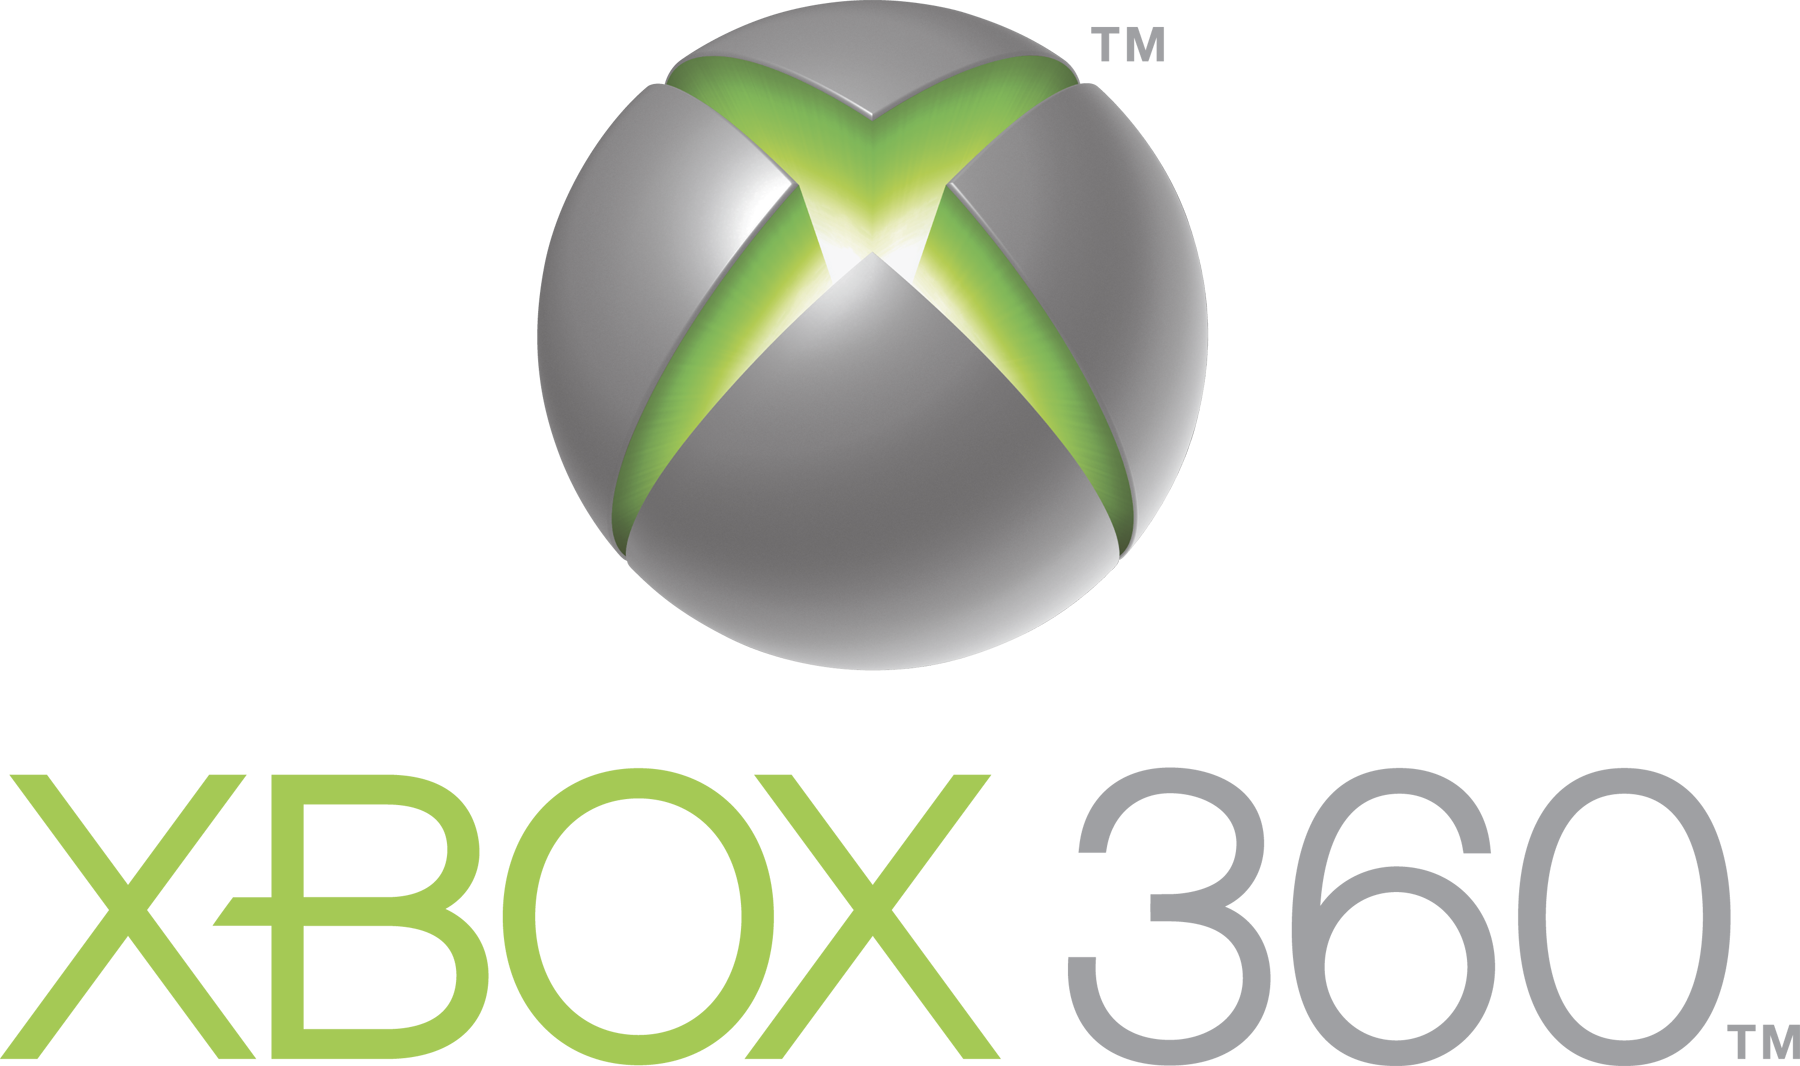 Video game logo png. Image xbox movie tv